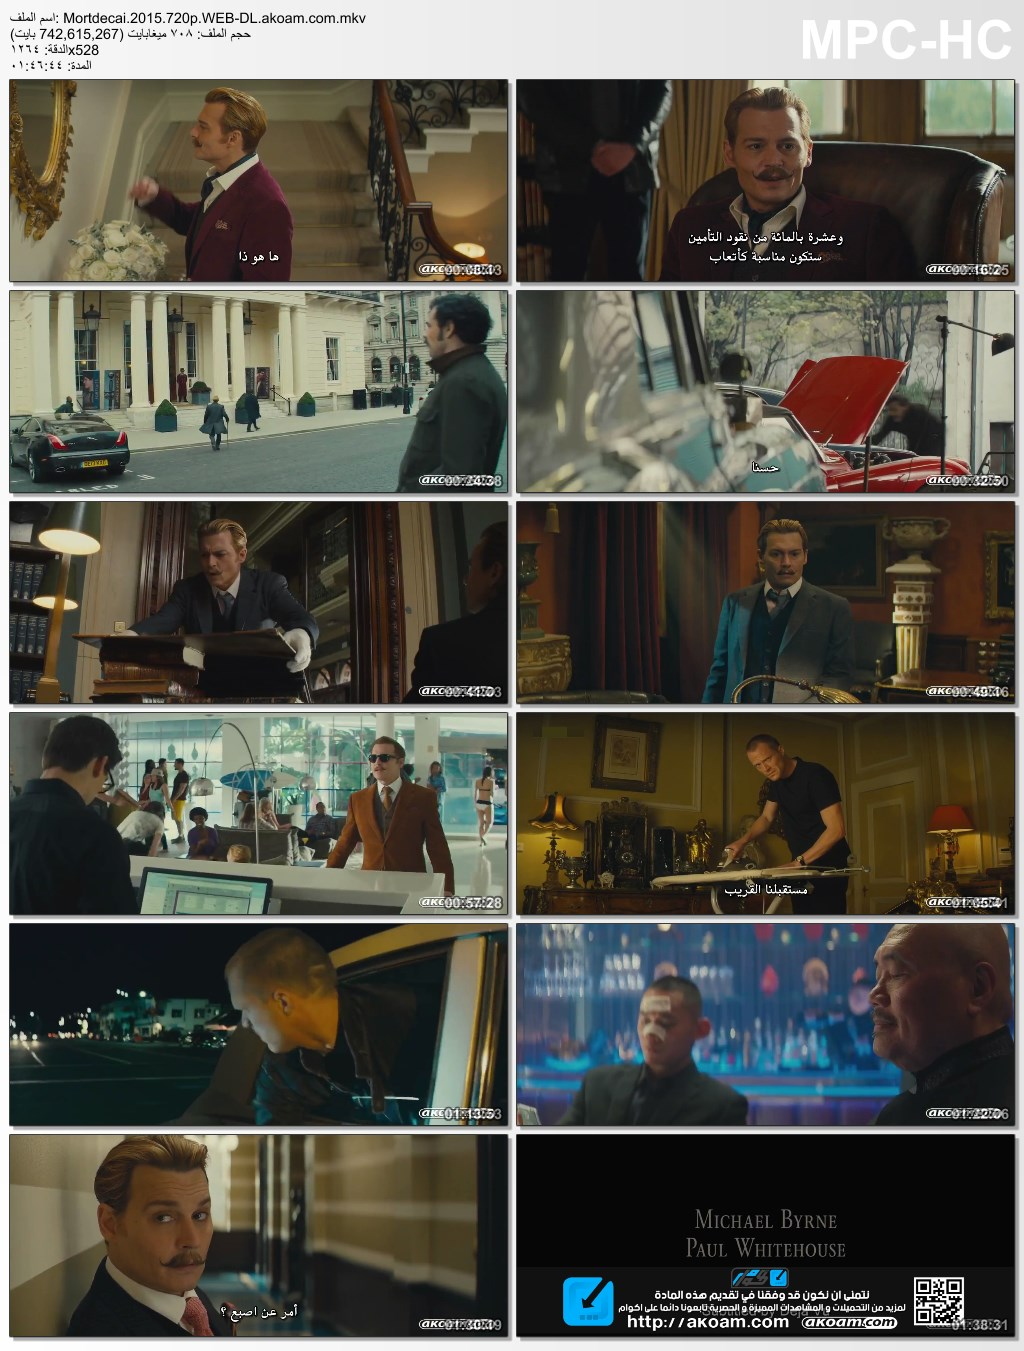 Mortdecai 2015,Mortdecai,الأكشن,الكوميديا,جوني ديب,Johnny Depp,Gwyneth Paltrow